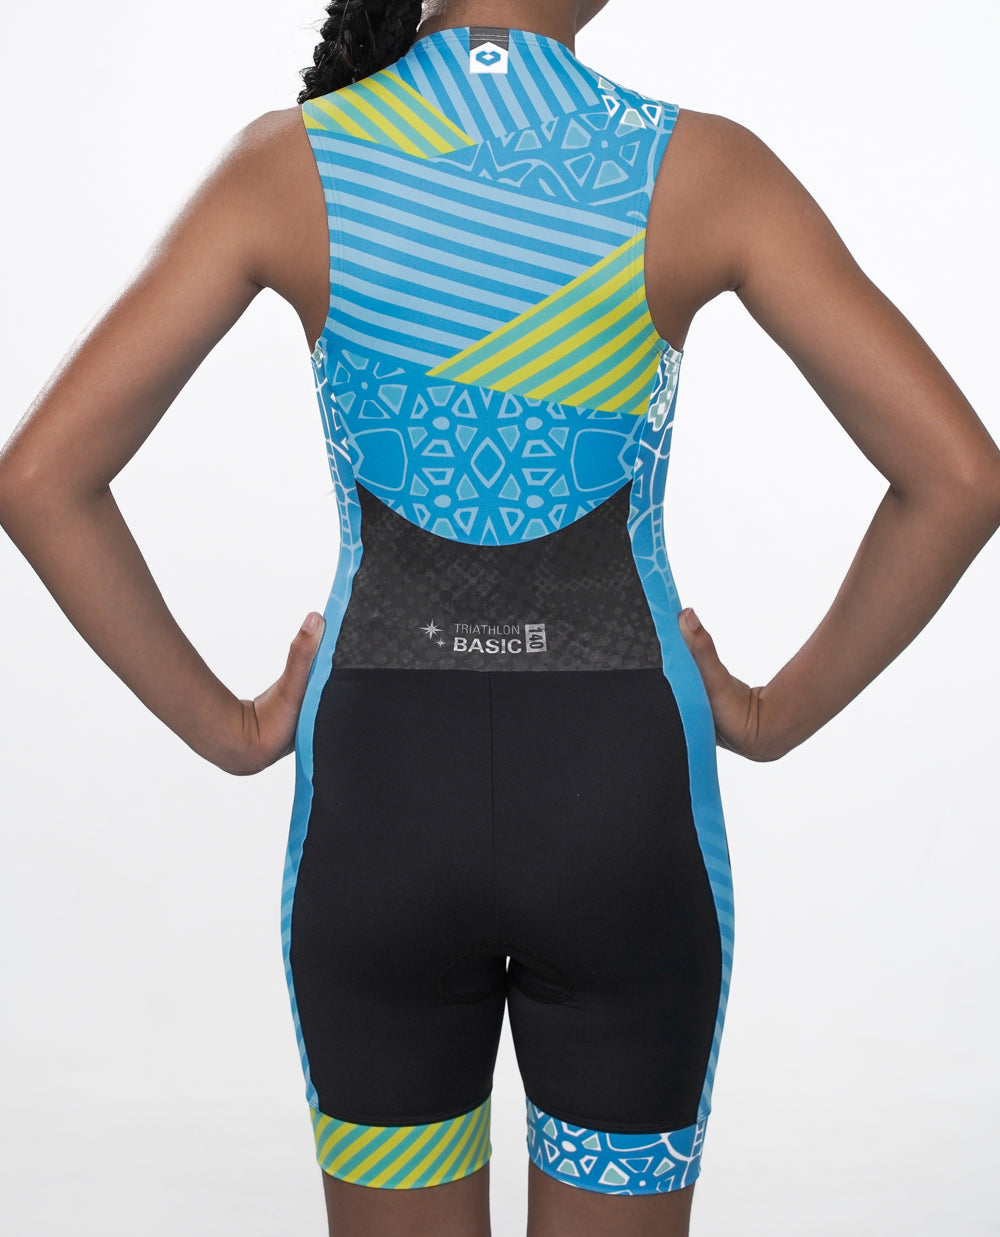 Youth Sleeveless Trisuit